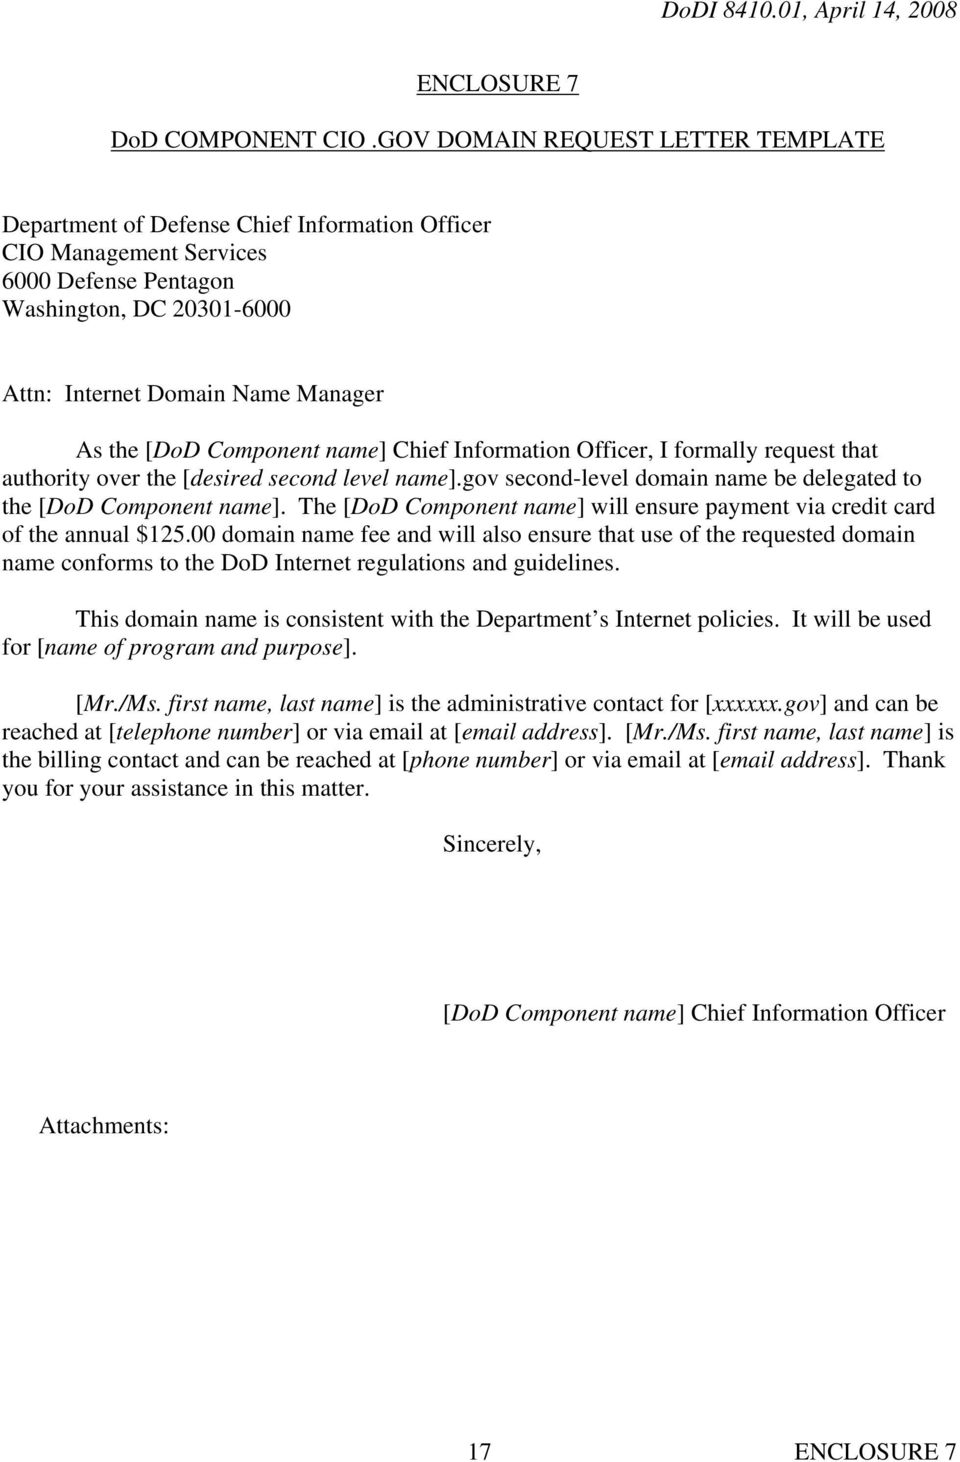 [DoD Component name] Chief Information Officer, I formally request that authority over the [desired second level name].gov second-level domain name be delegated to the [DoD Component name].